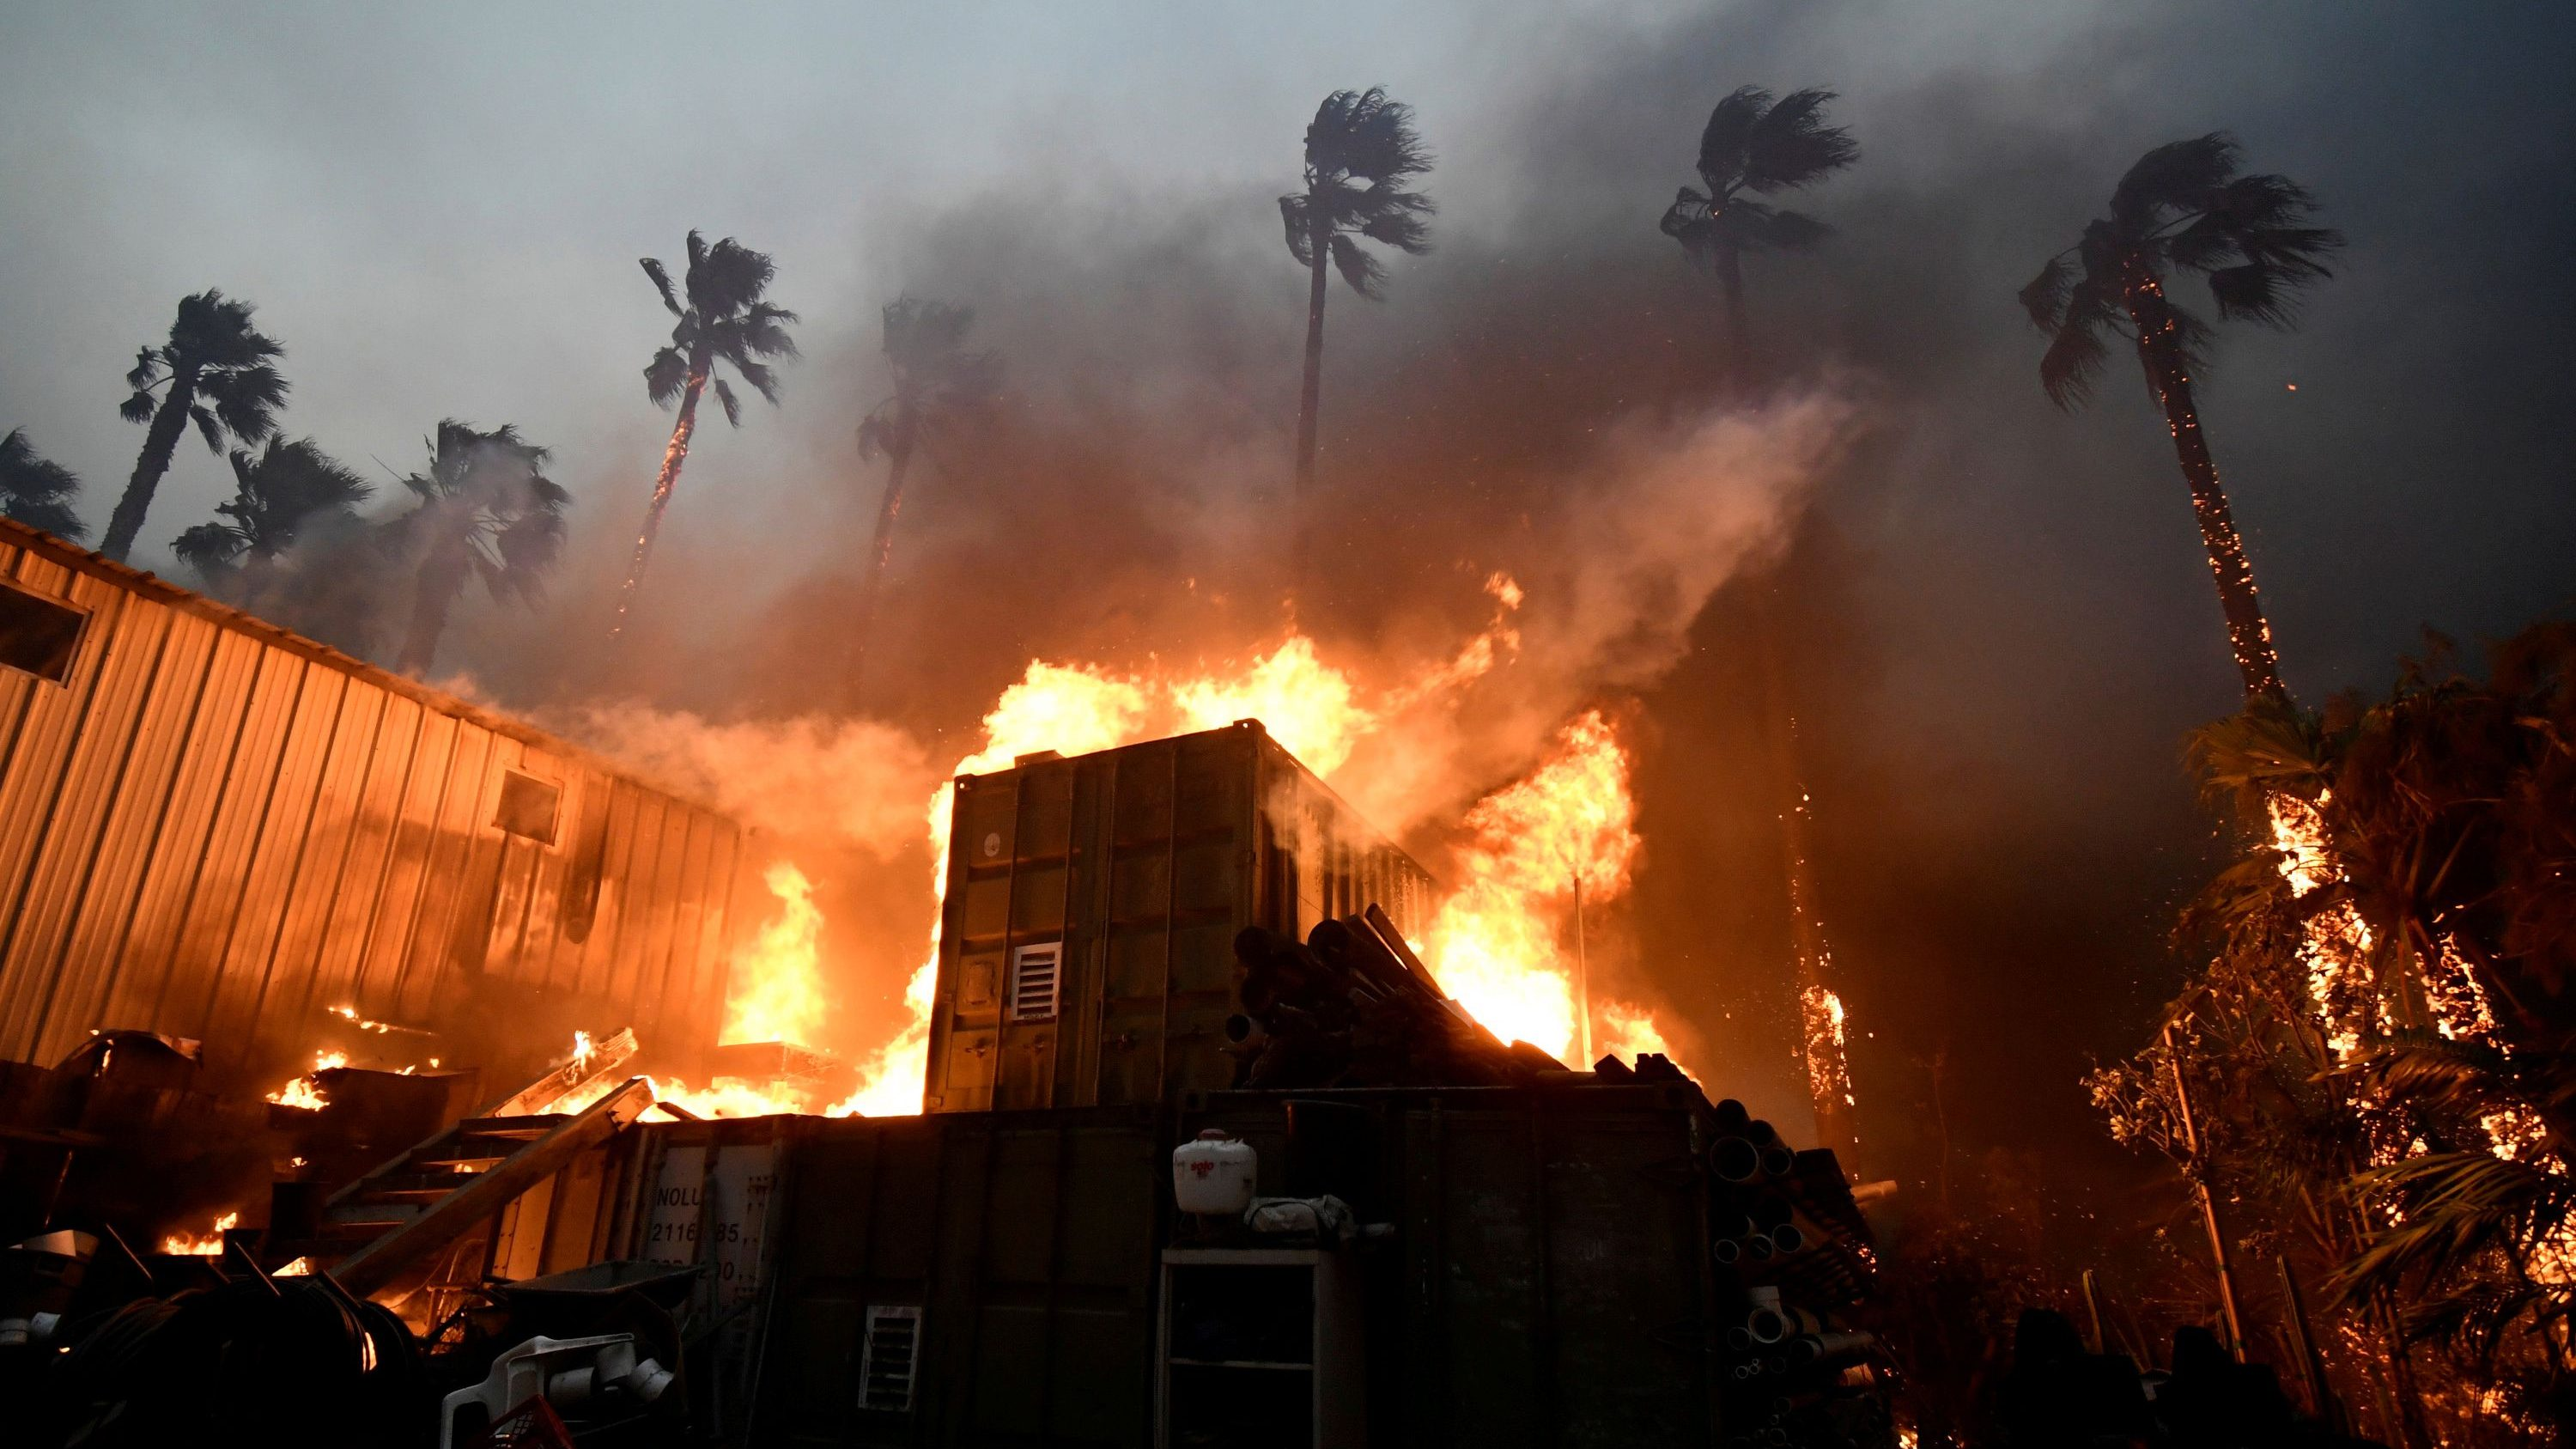 A home is engulfed in flames during the Woolsey Fire in Malibu, California, U.S. November 9, 2018.